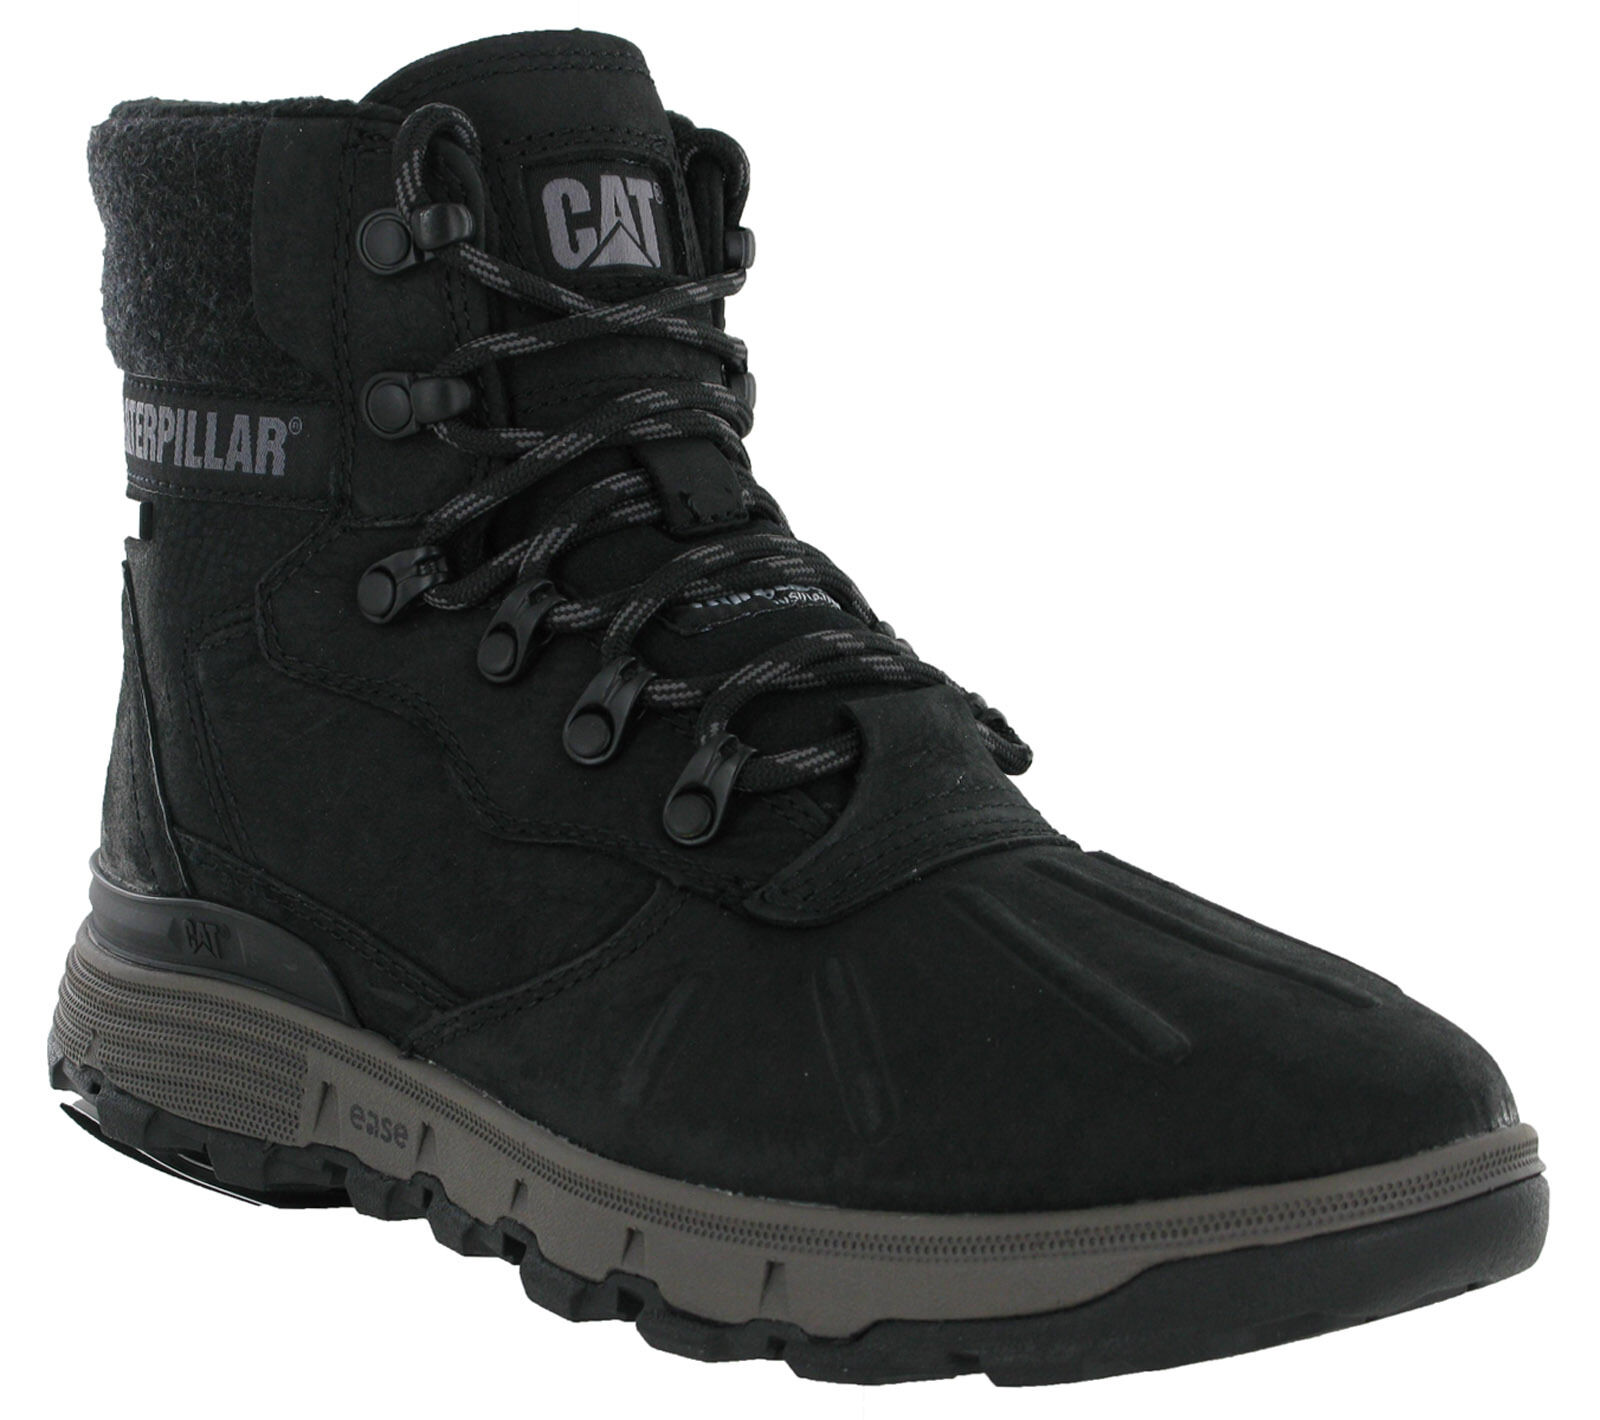 CAT Caterpillar Stiction Hi Ice Waterproof Snow Ankle Leather Mens Grip Boots